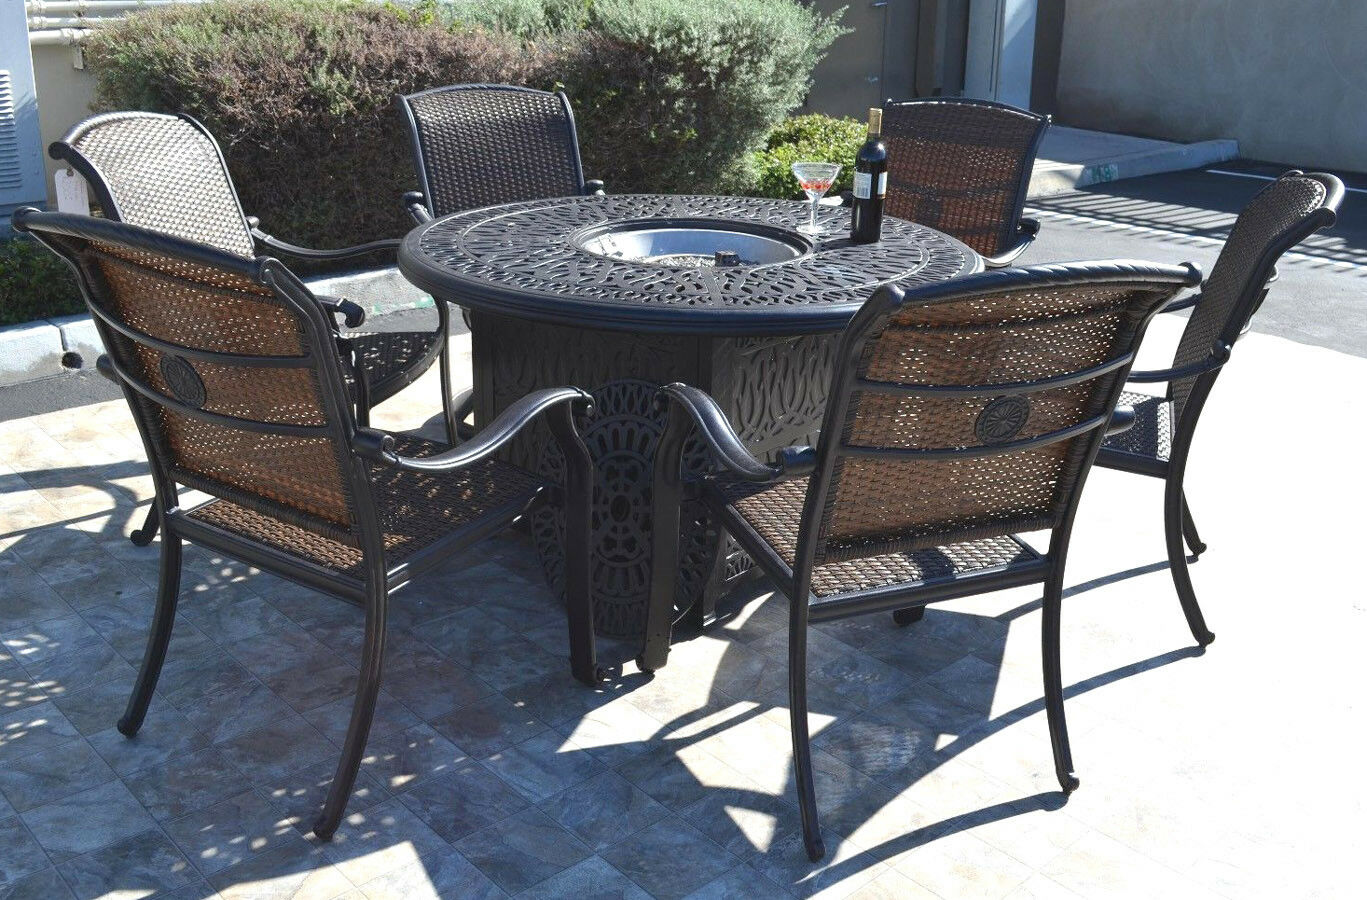 Picture of: Cast Aluminum Wicker Furniture Patio 7pc Fire Pit Dining Set With Round Table For Sale Online